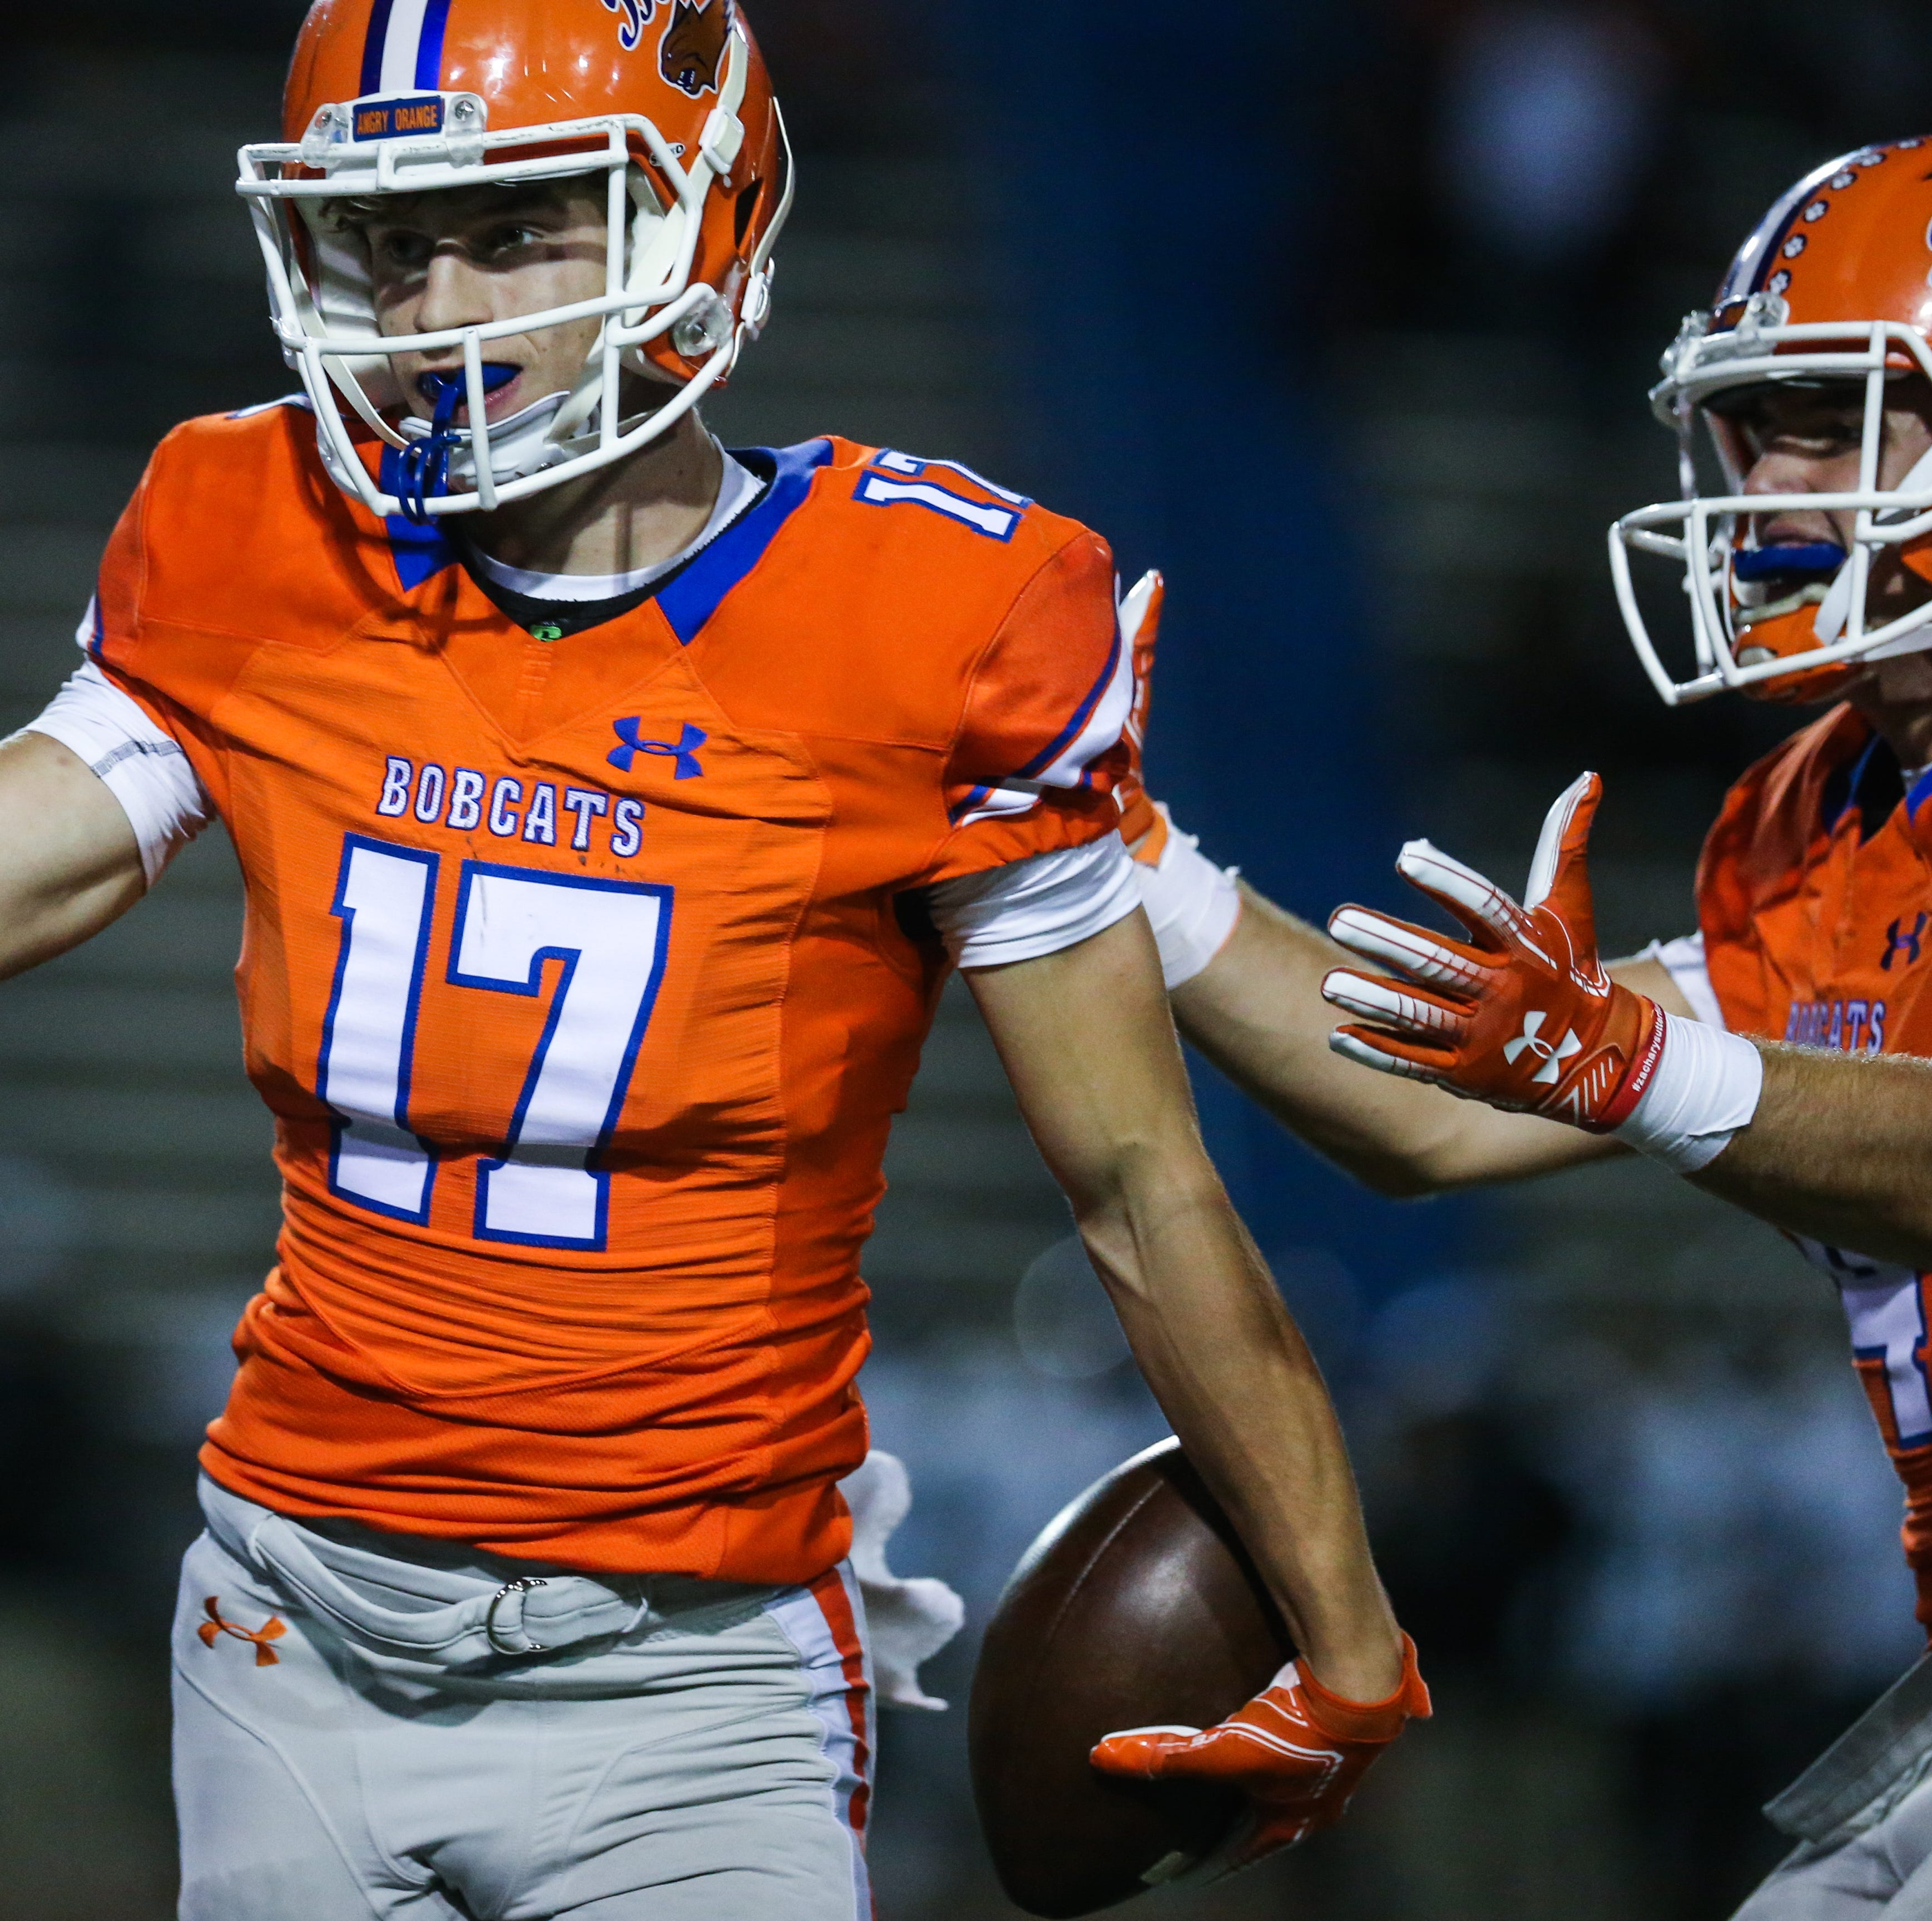 San Angelo Central football team makes strides heading into Spring Game